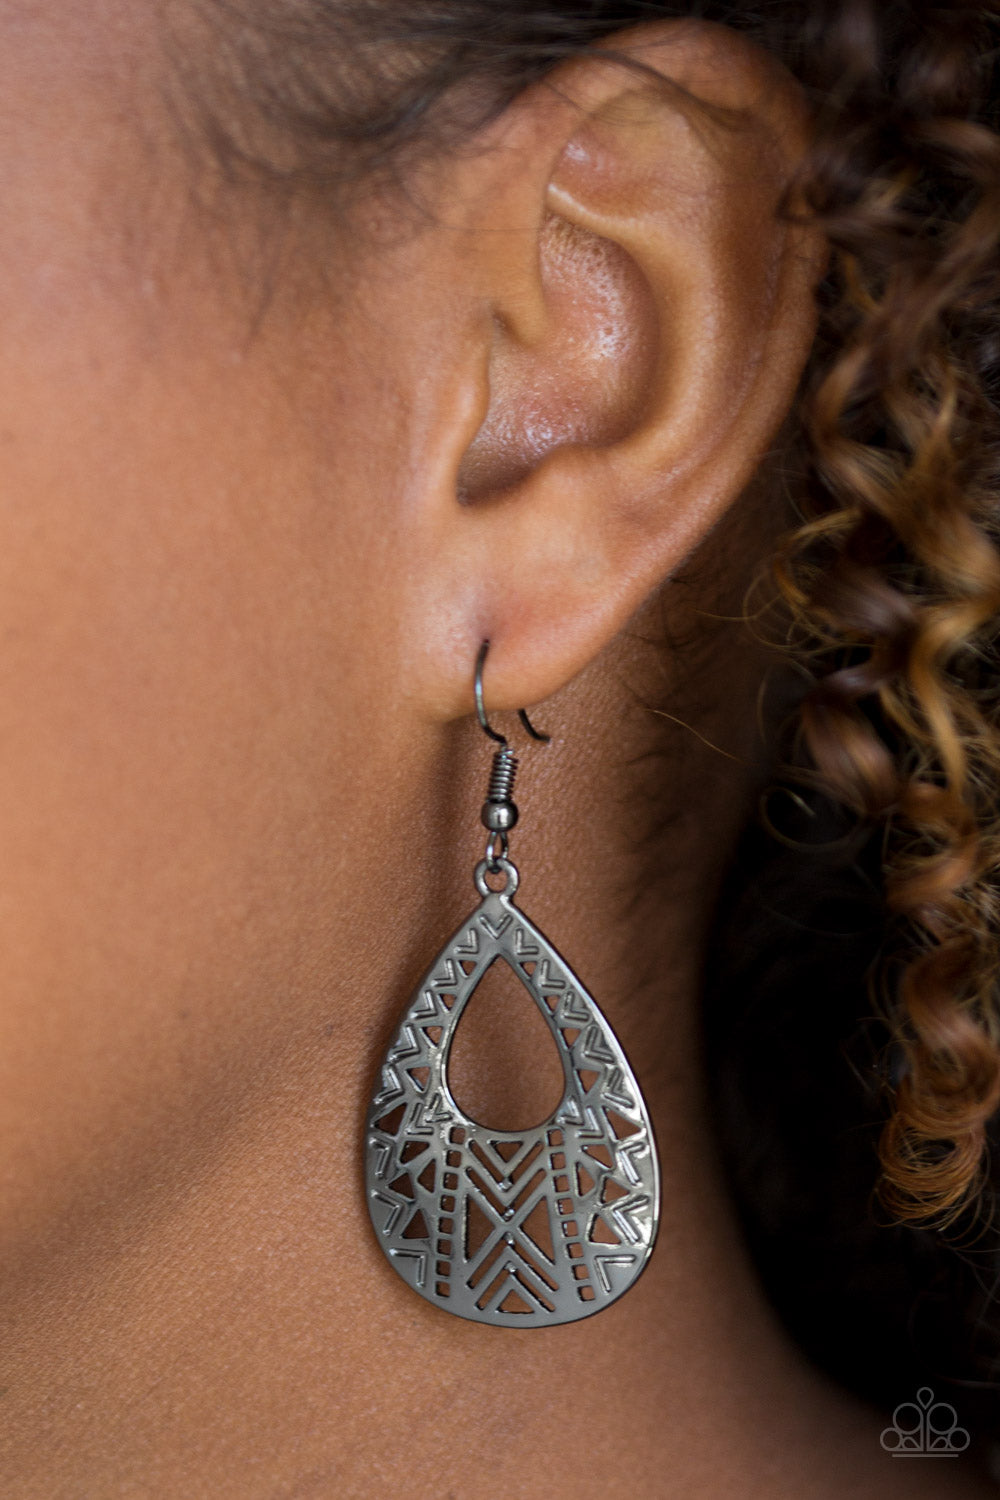 Brushed in a high-sheen finish, edgy geometric patterns climb a shiny gunmetal teardrop for a trendy tribal look. Earring attaches to a standard fishhook fitting.  Sold as one pair of earrings.  Always nickel and lead free.